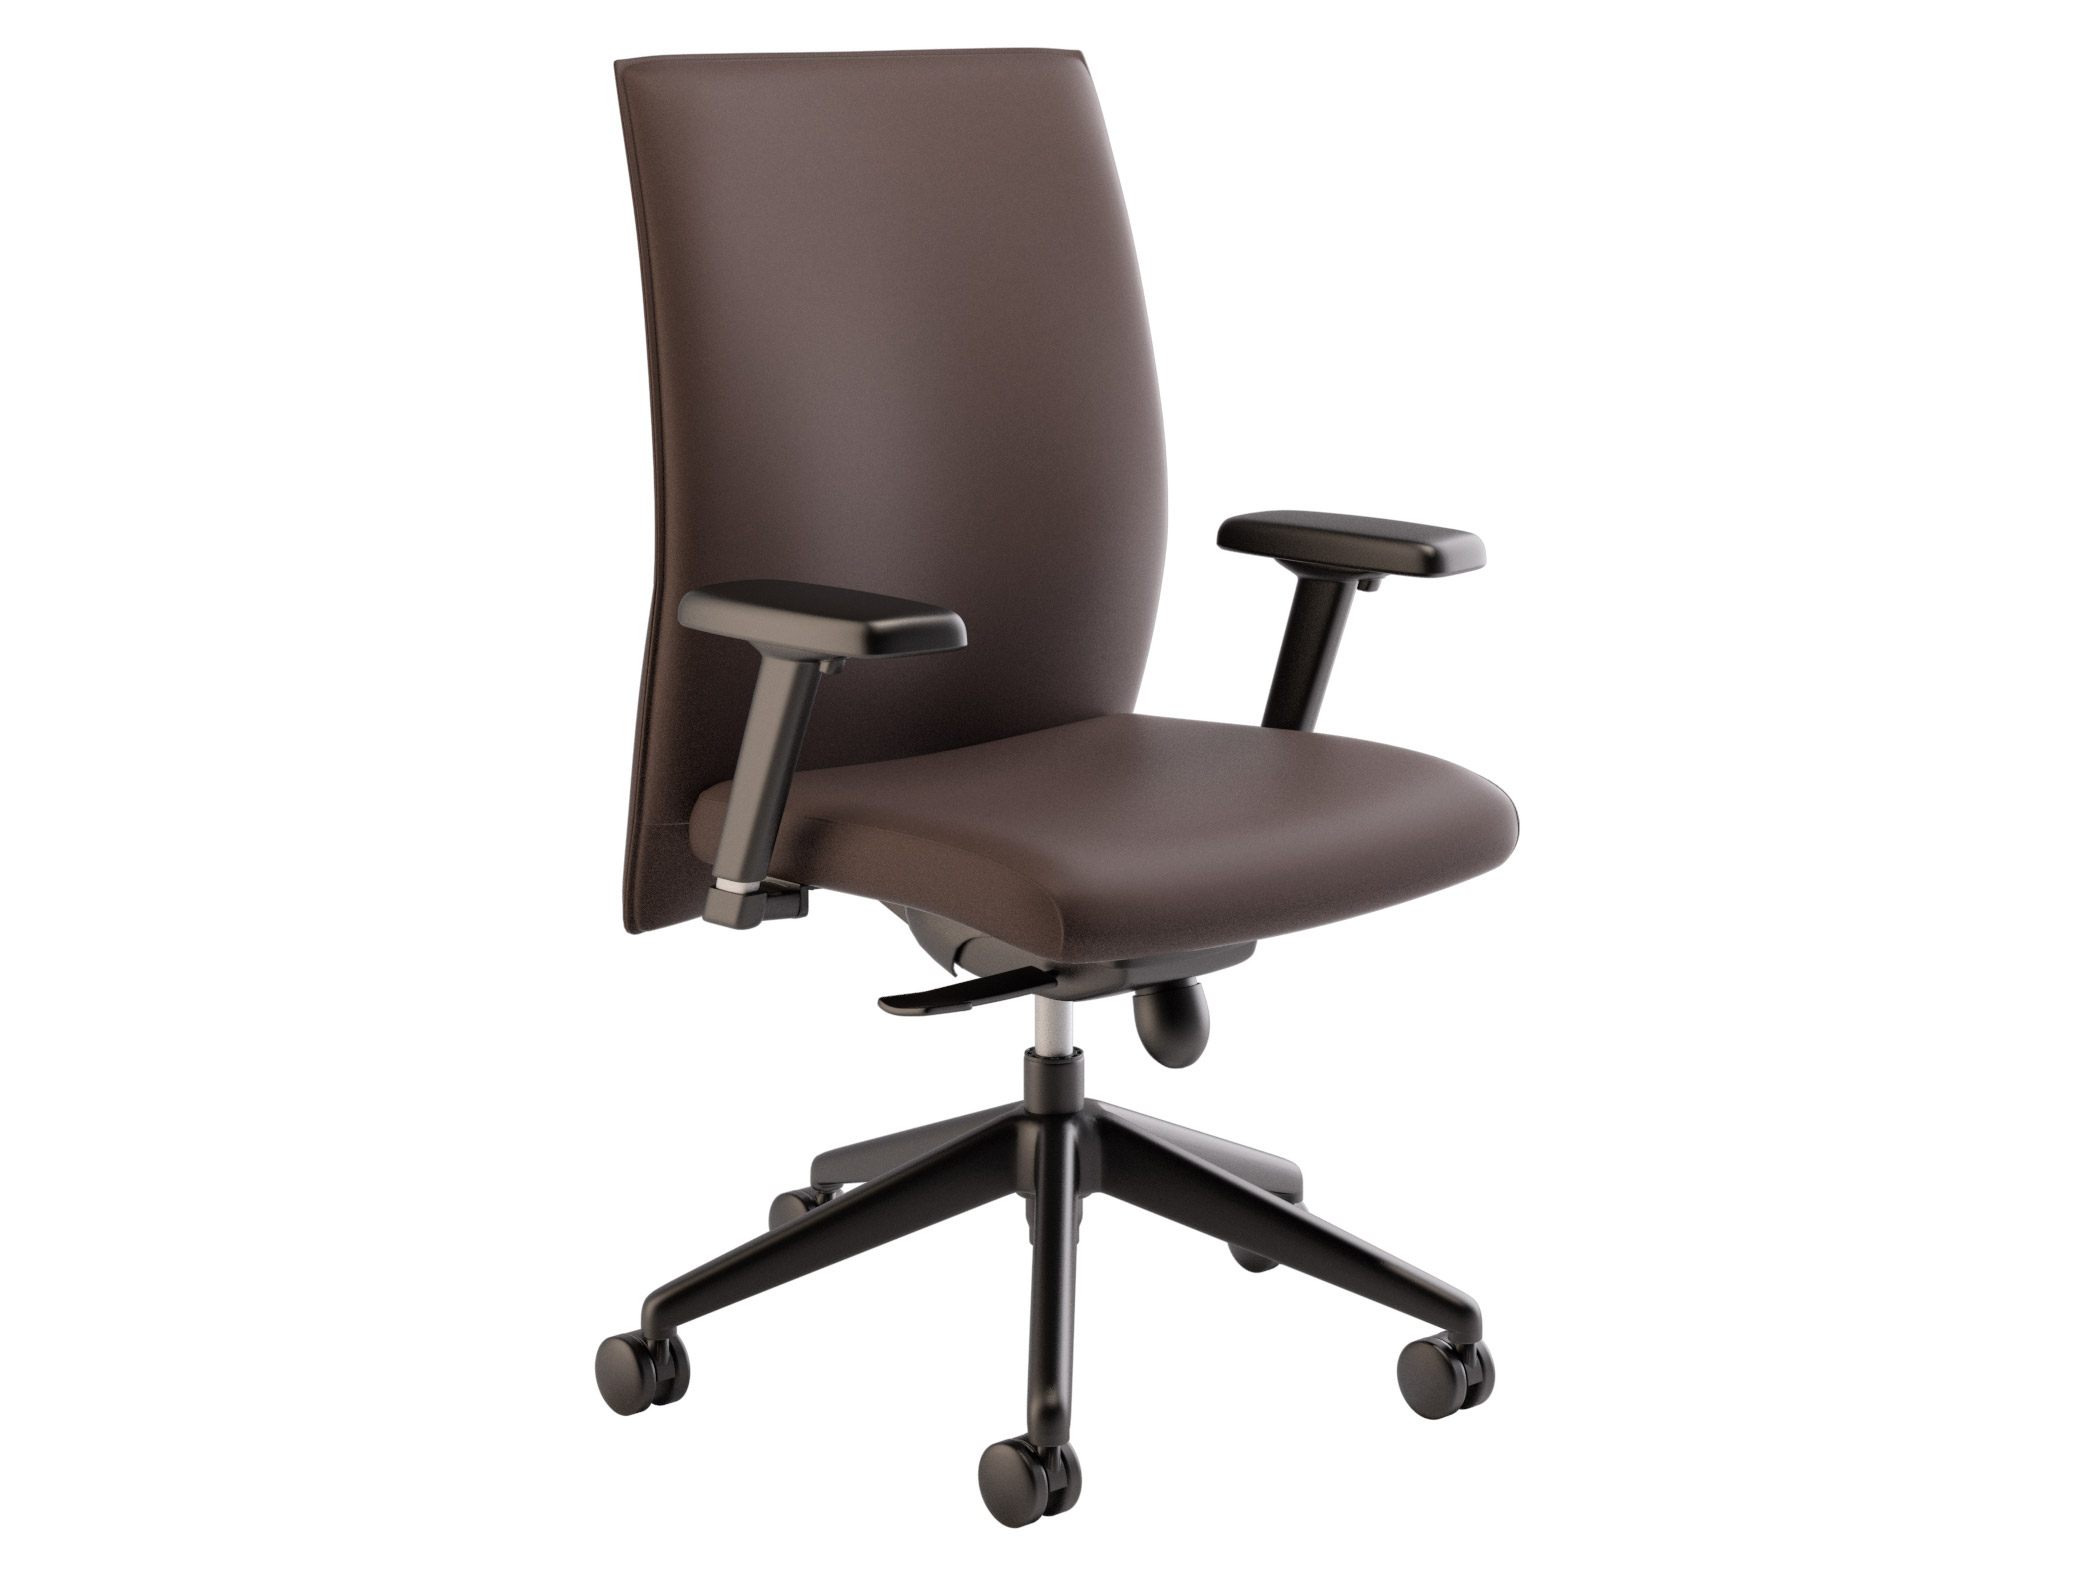 Charmant Brown Office Chair   Maxim Chairs For Office